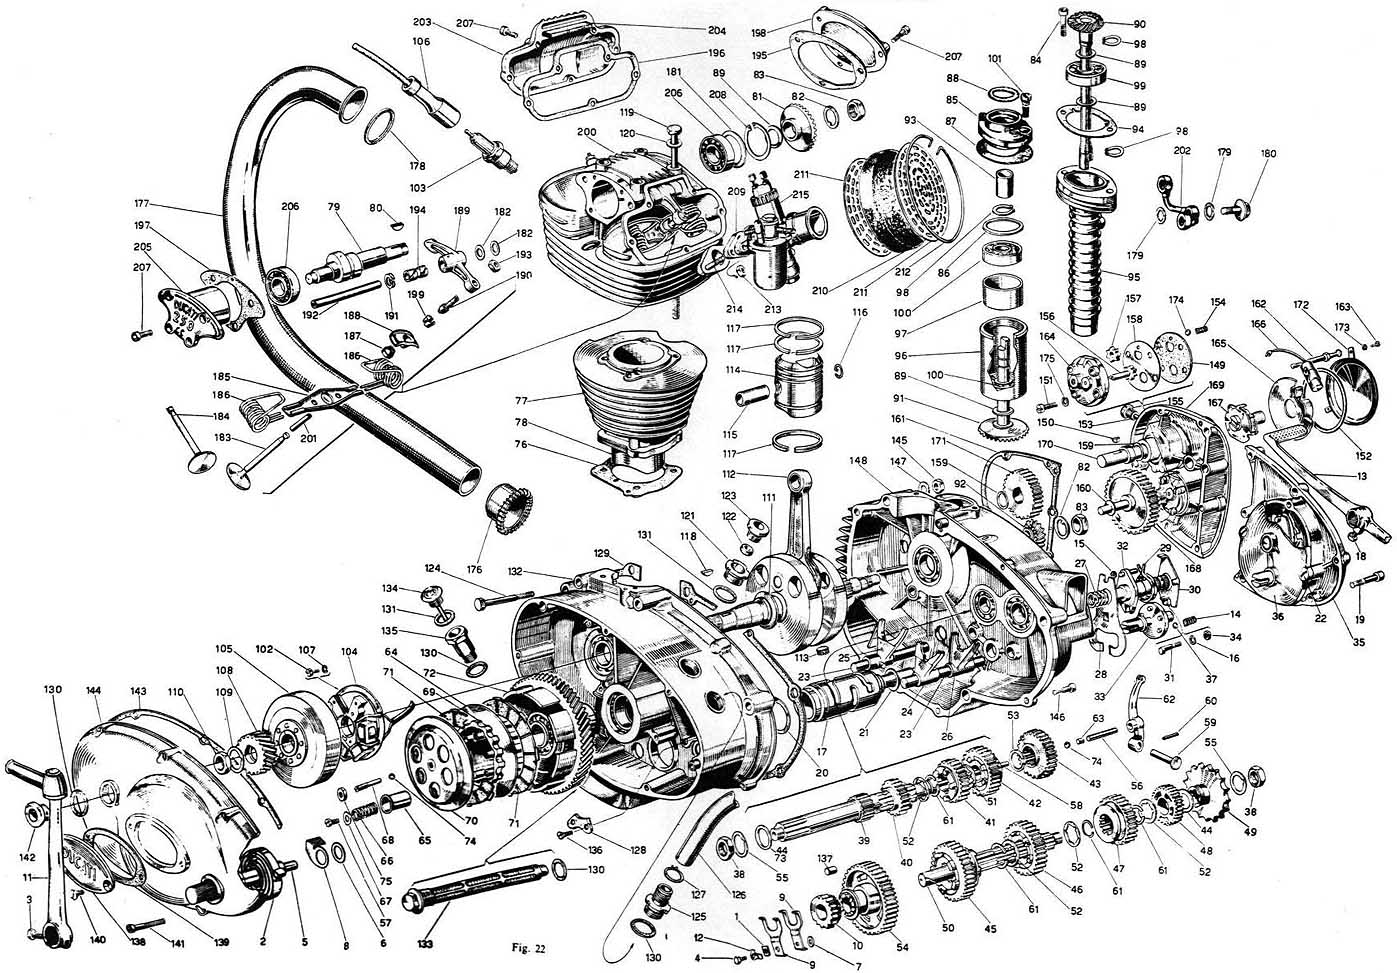 Kawasaki Dirt Bike Engine Diagram